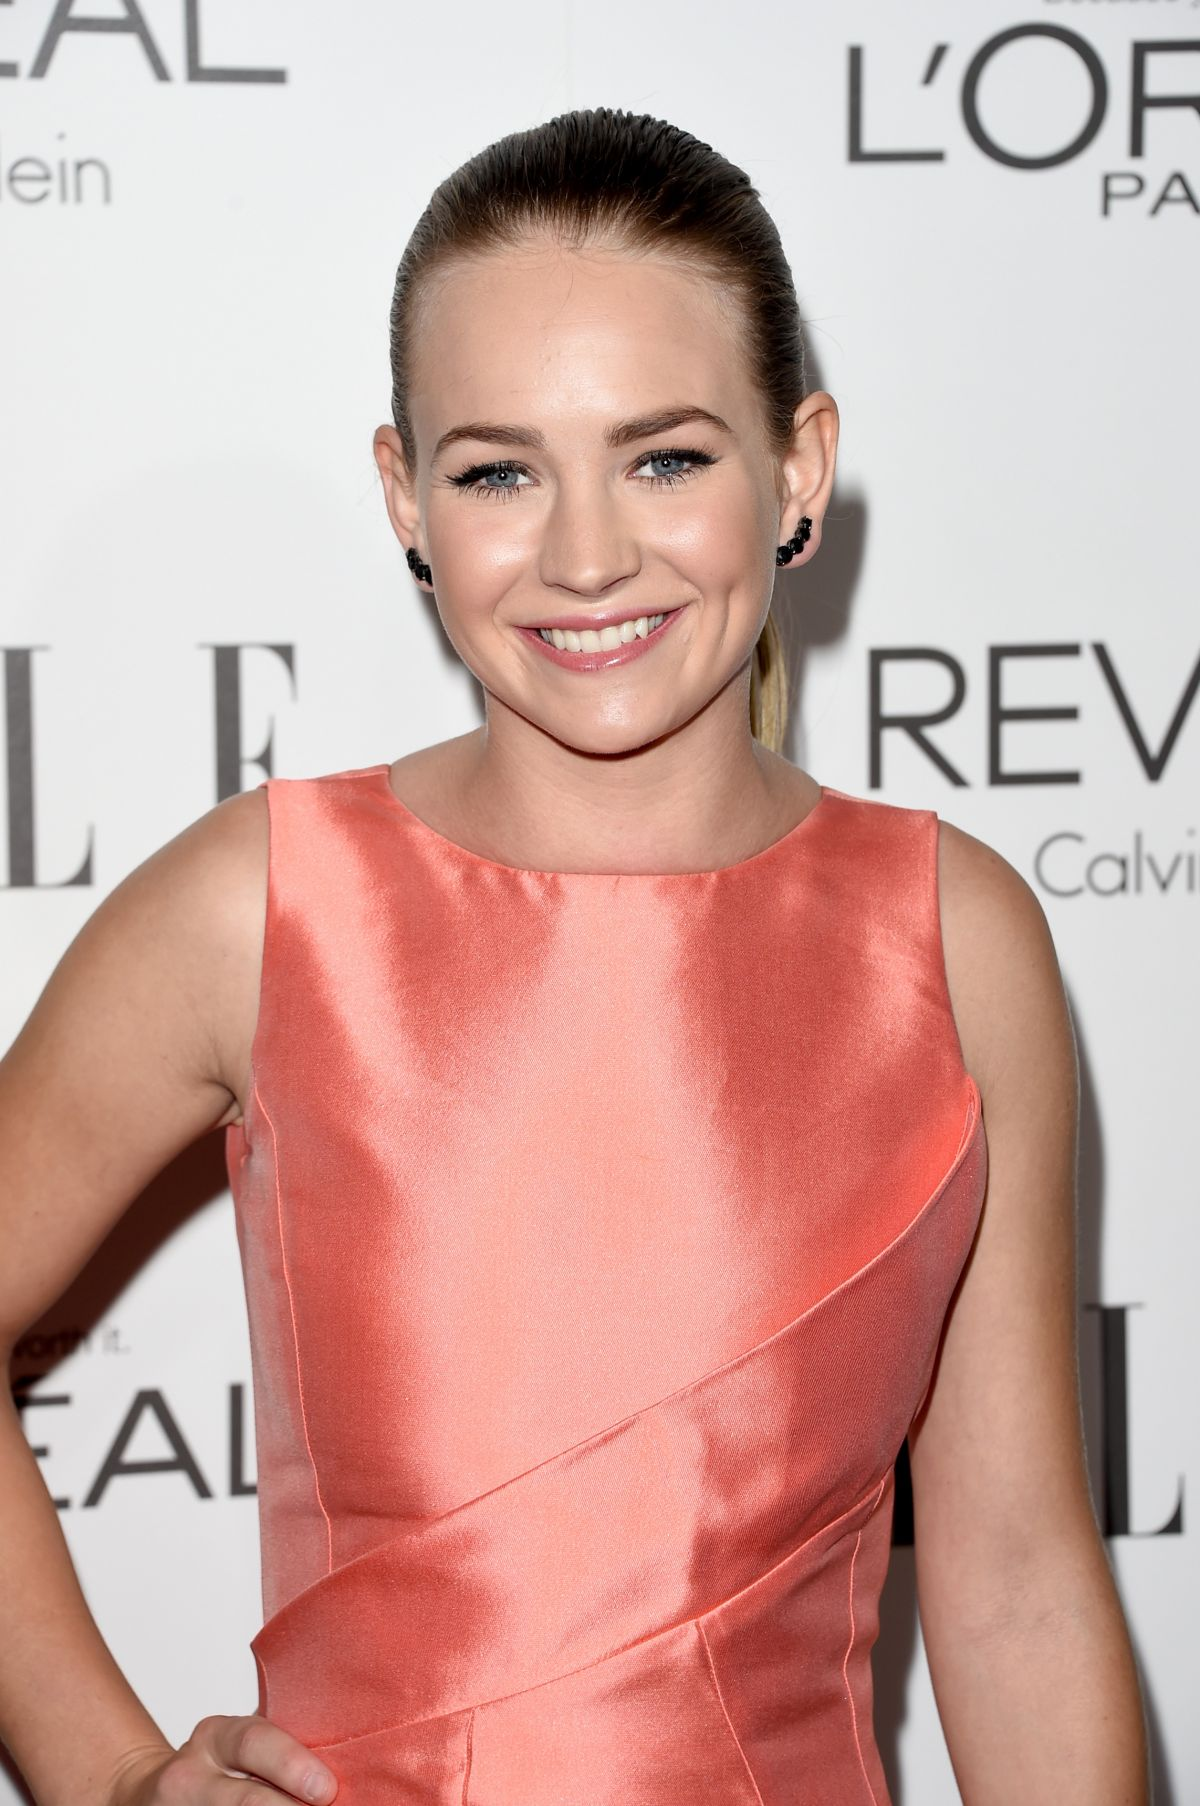 BRITT ROBERTSON at Elle's Women in Hollywood Awards in Los Angeles